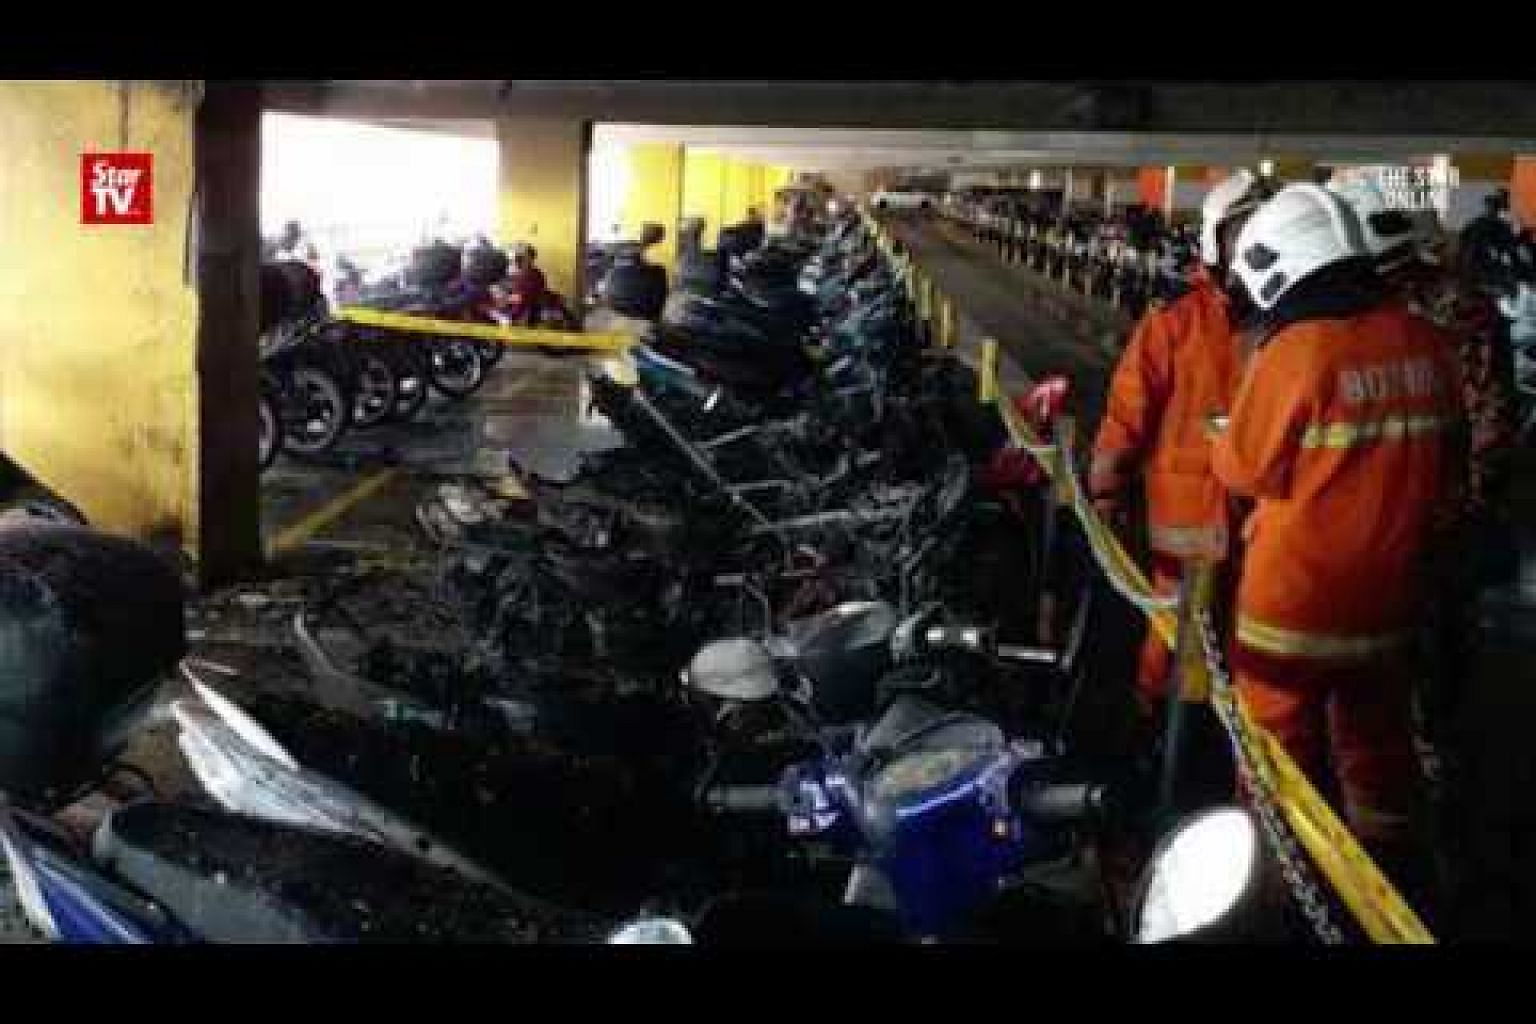 Fire destroys 13 motorcycles in Seremban bus station